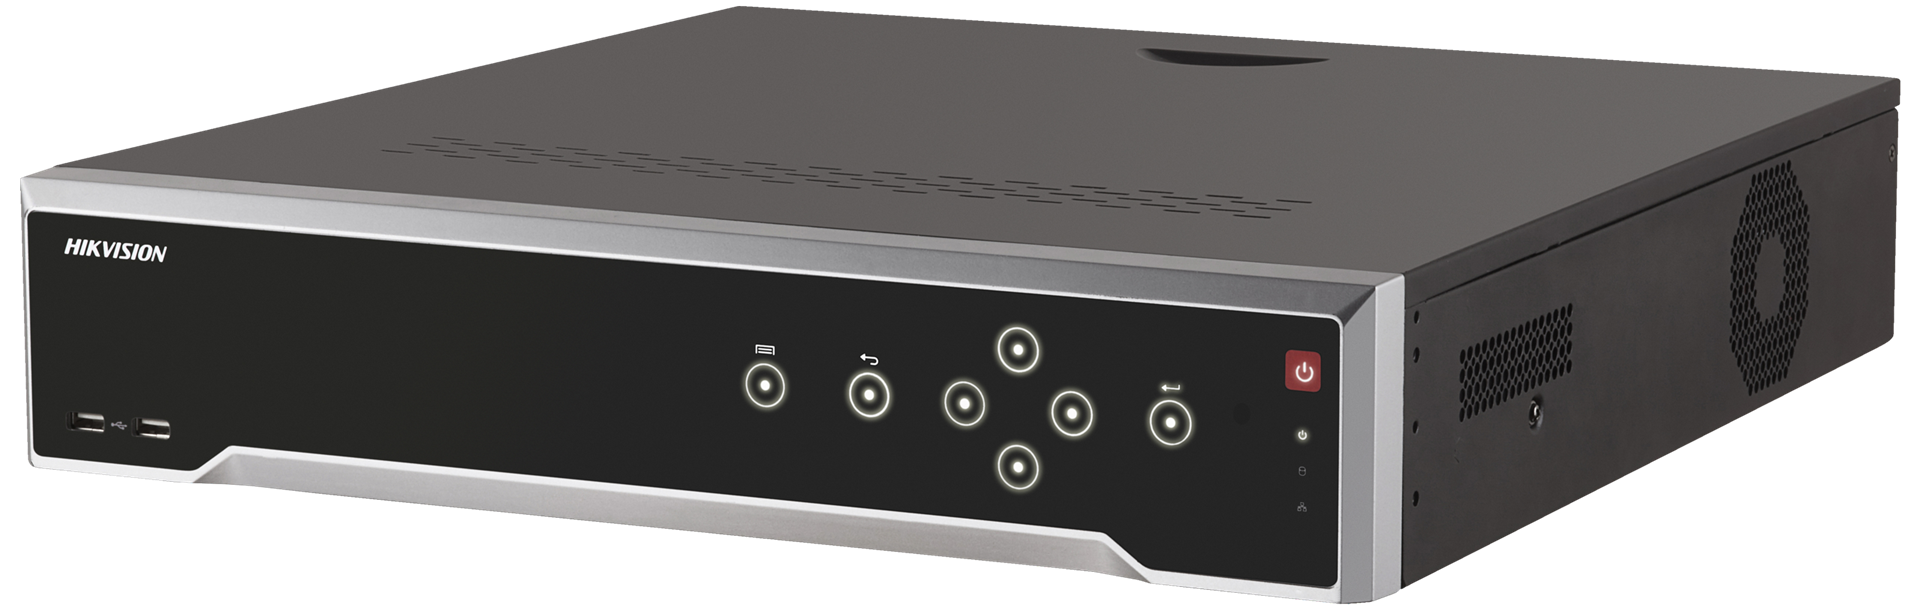 Picture of DS-7716NI-I4/16P(B)  16-ch 1.5U 16 PoE 4K NVR Hikvision